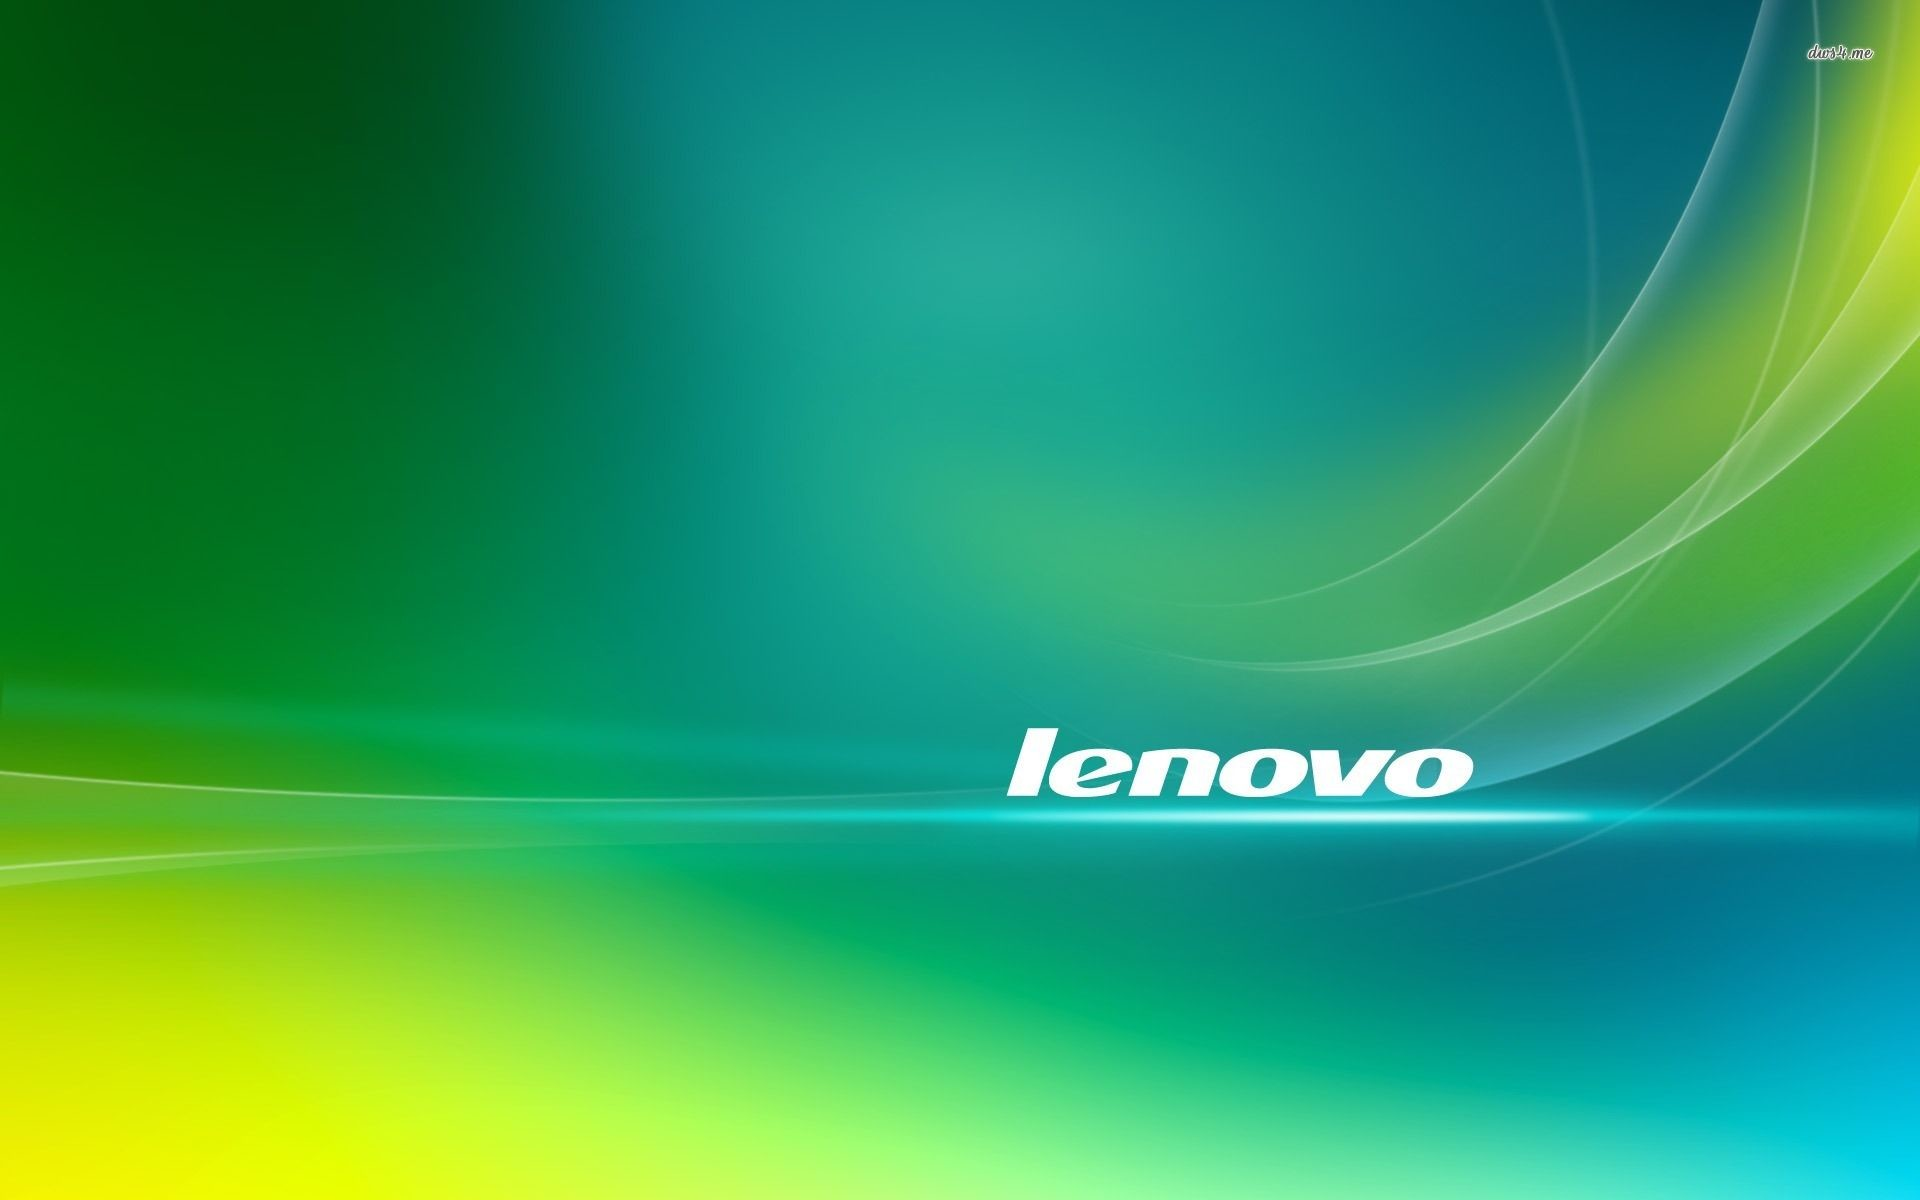 1920x1200 Lenovo Wallpapers - Wallpaper Cave